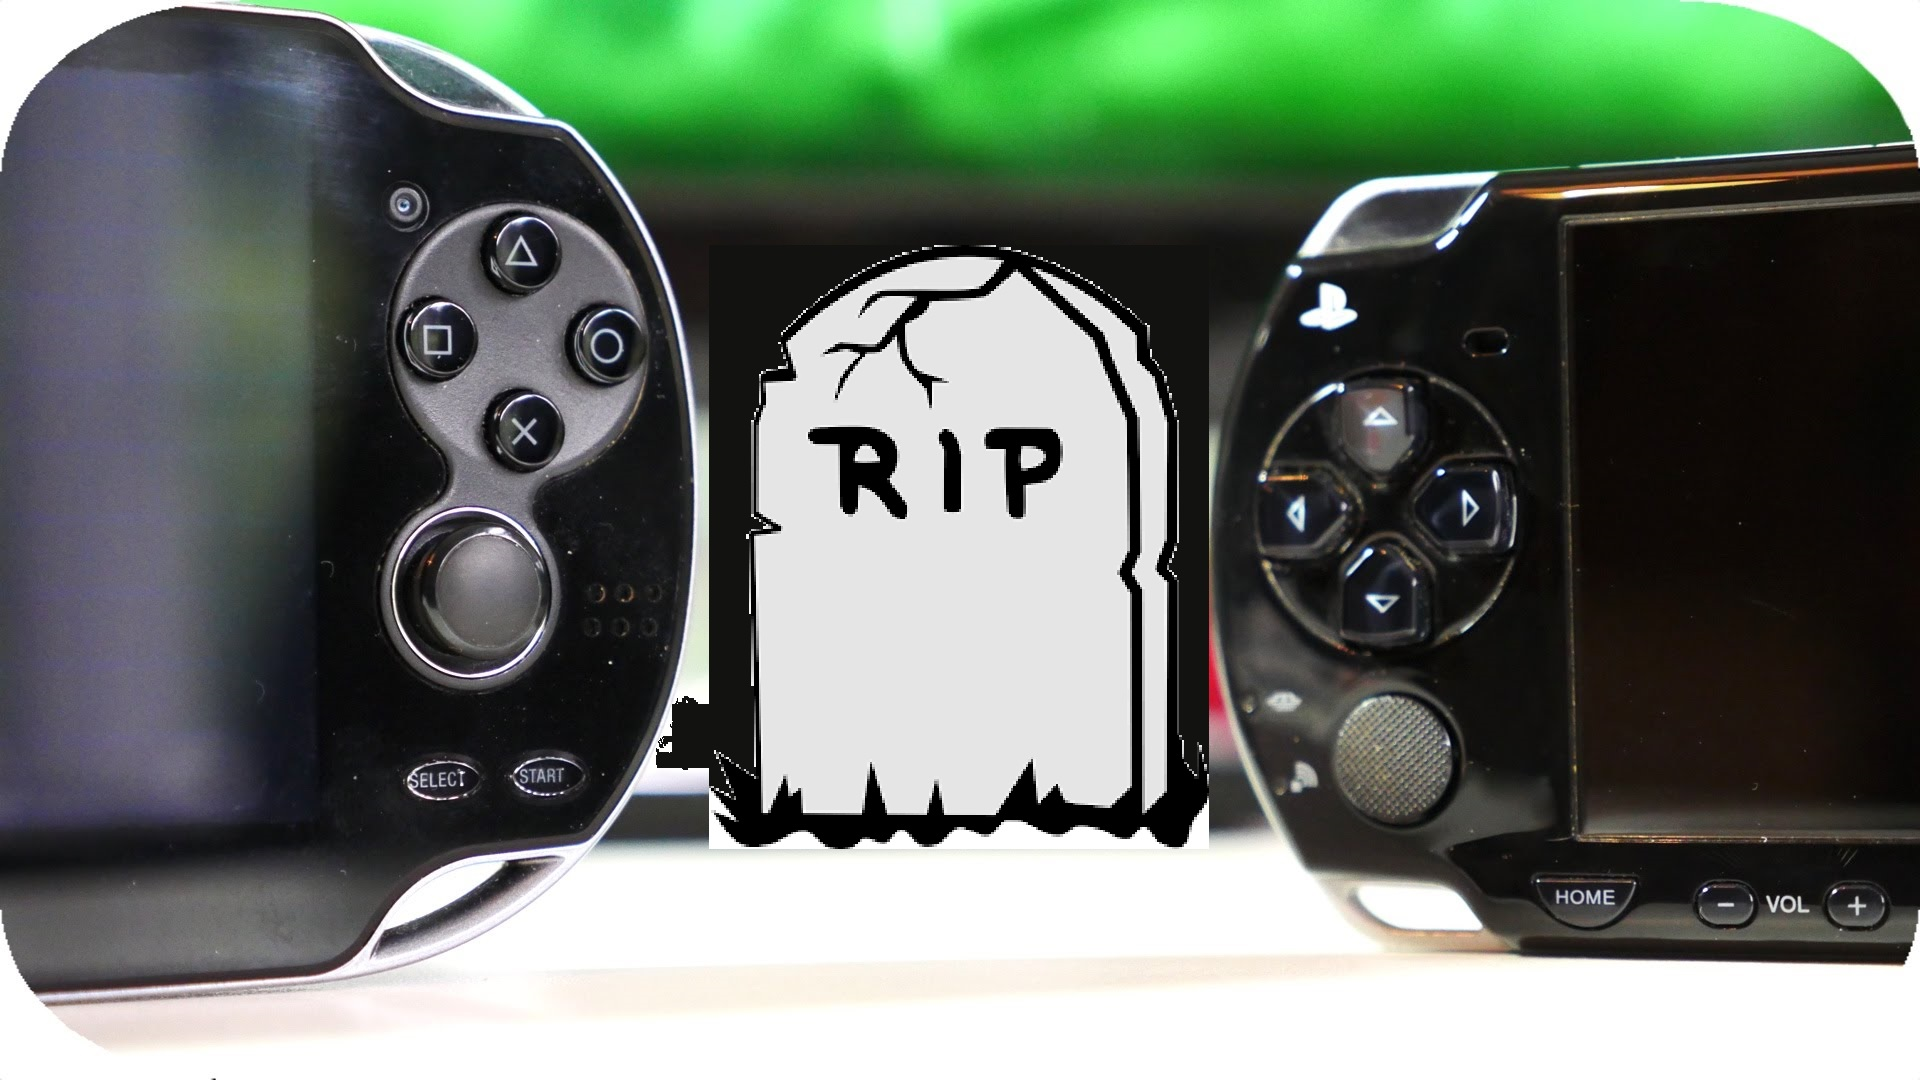 Are handle gaming devices dying out?